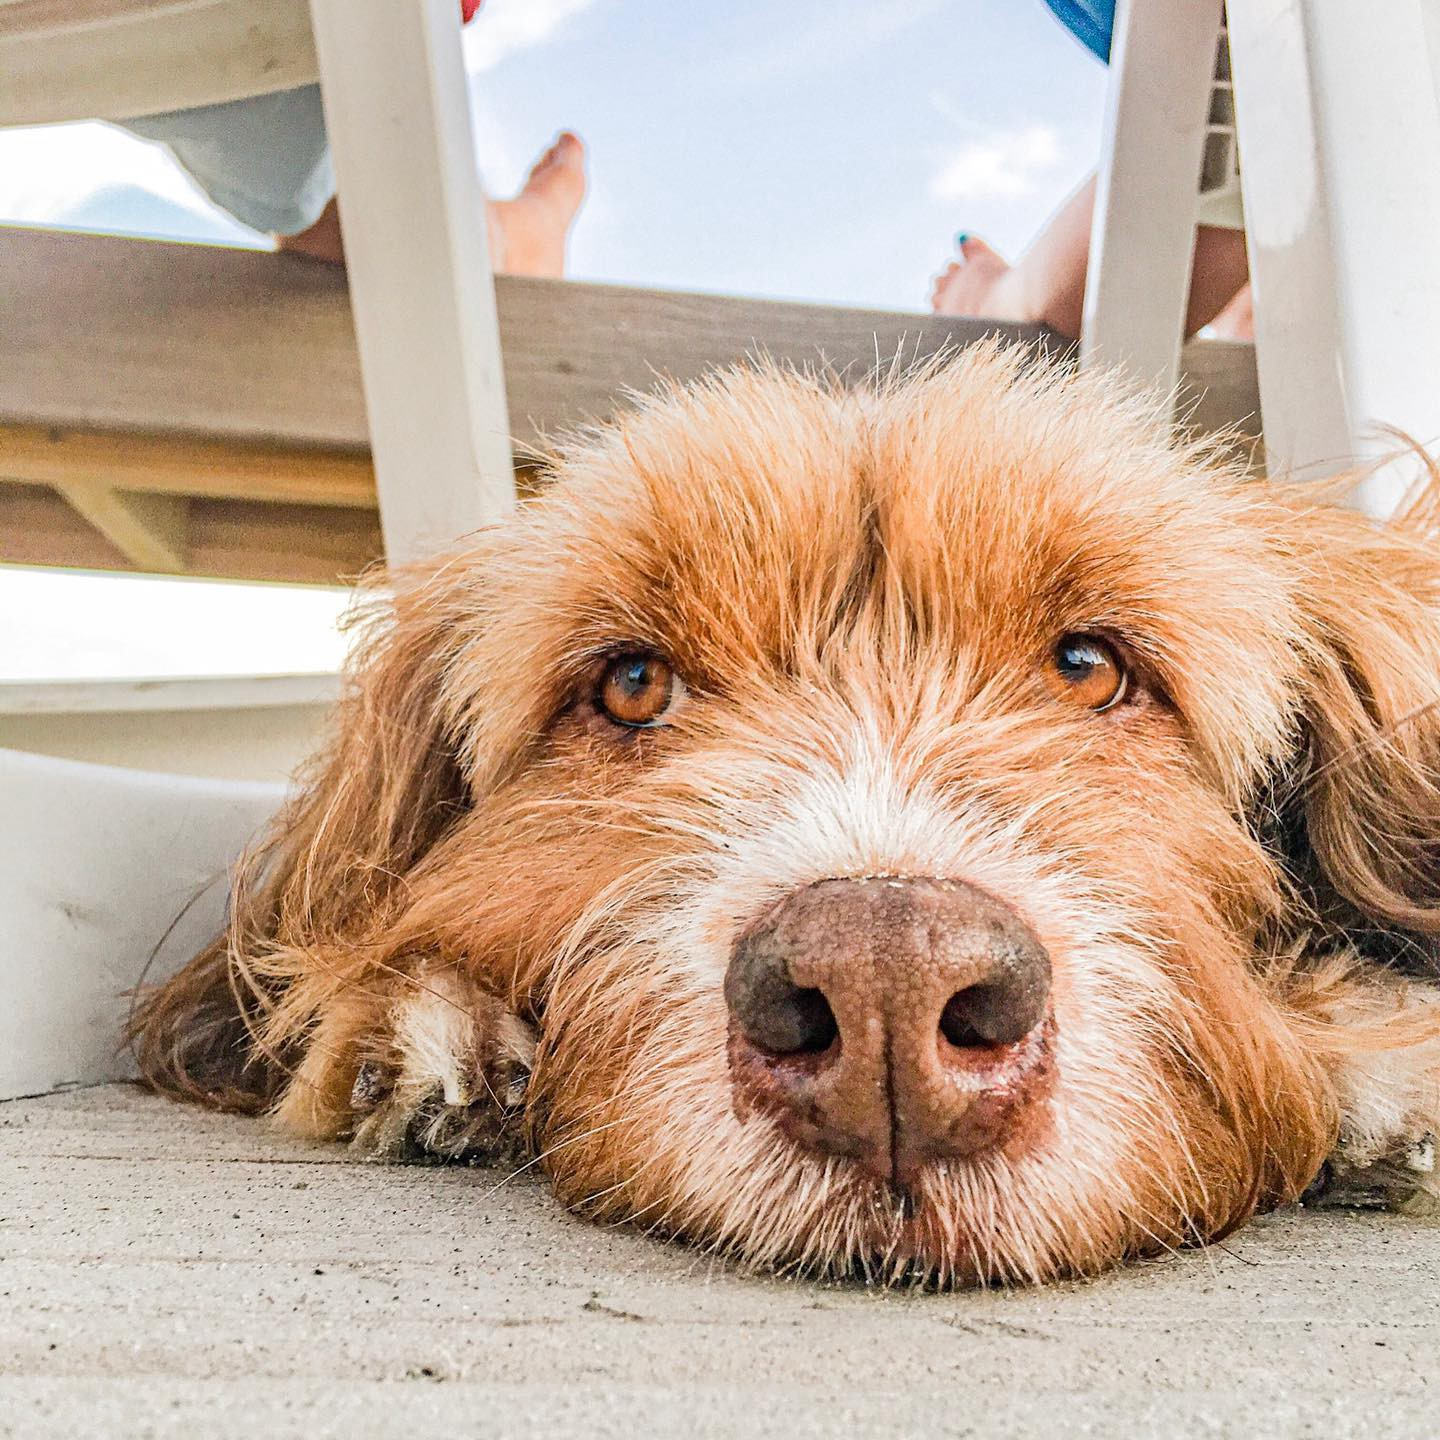 Kinzi, a ginger terrier-like dog resting by two beach chairs